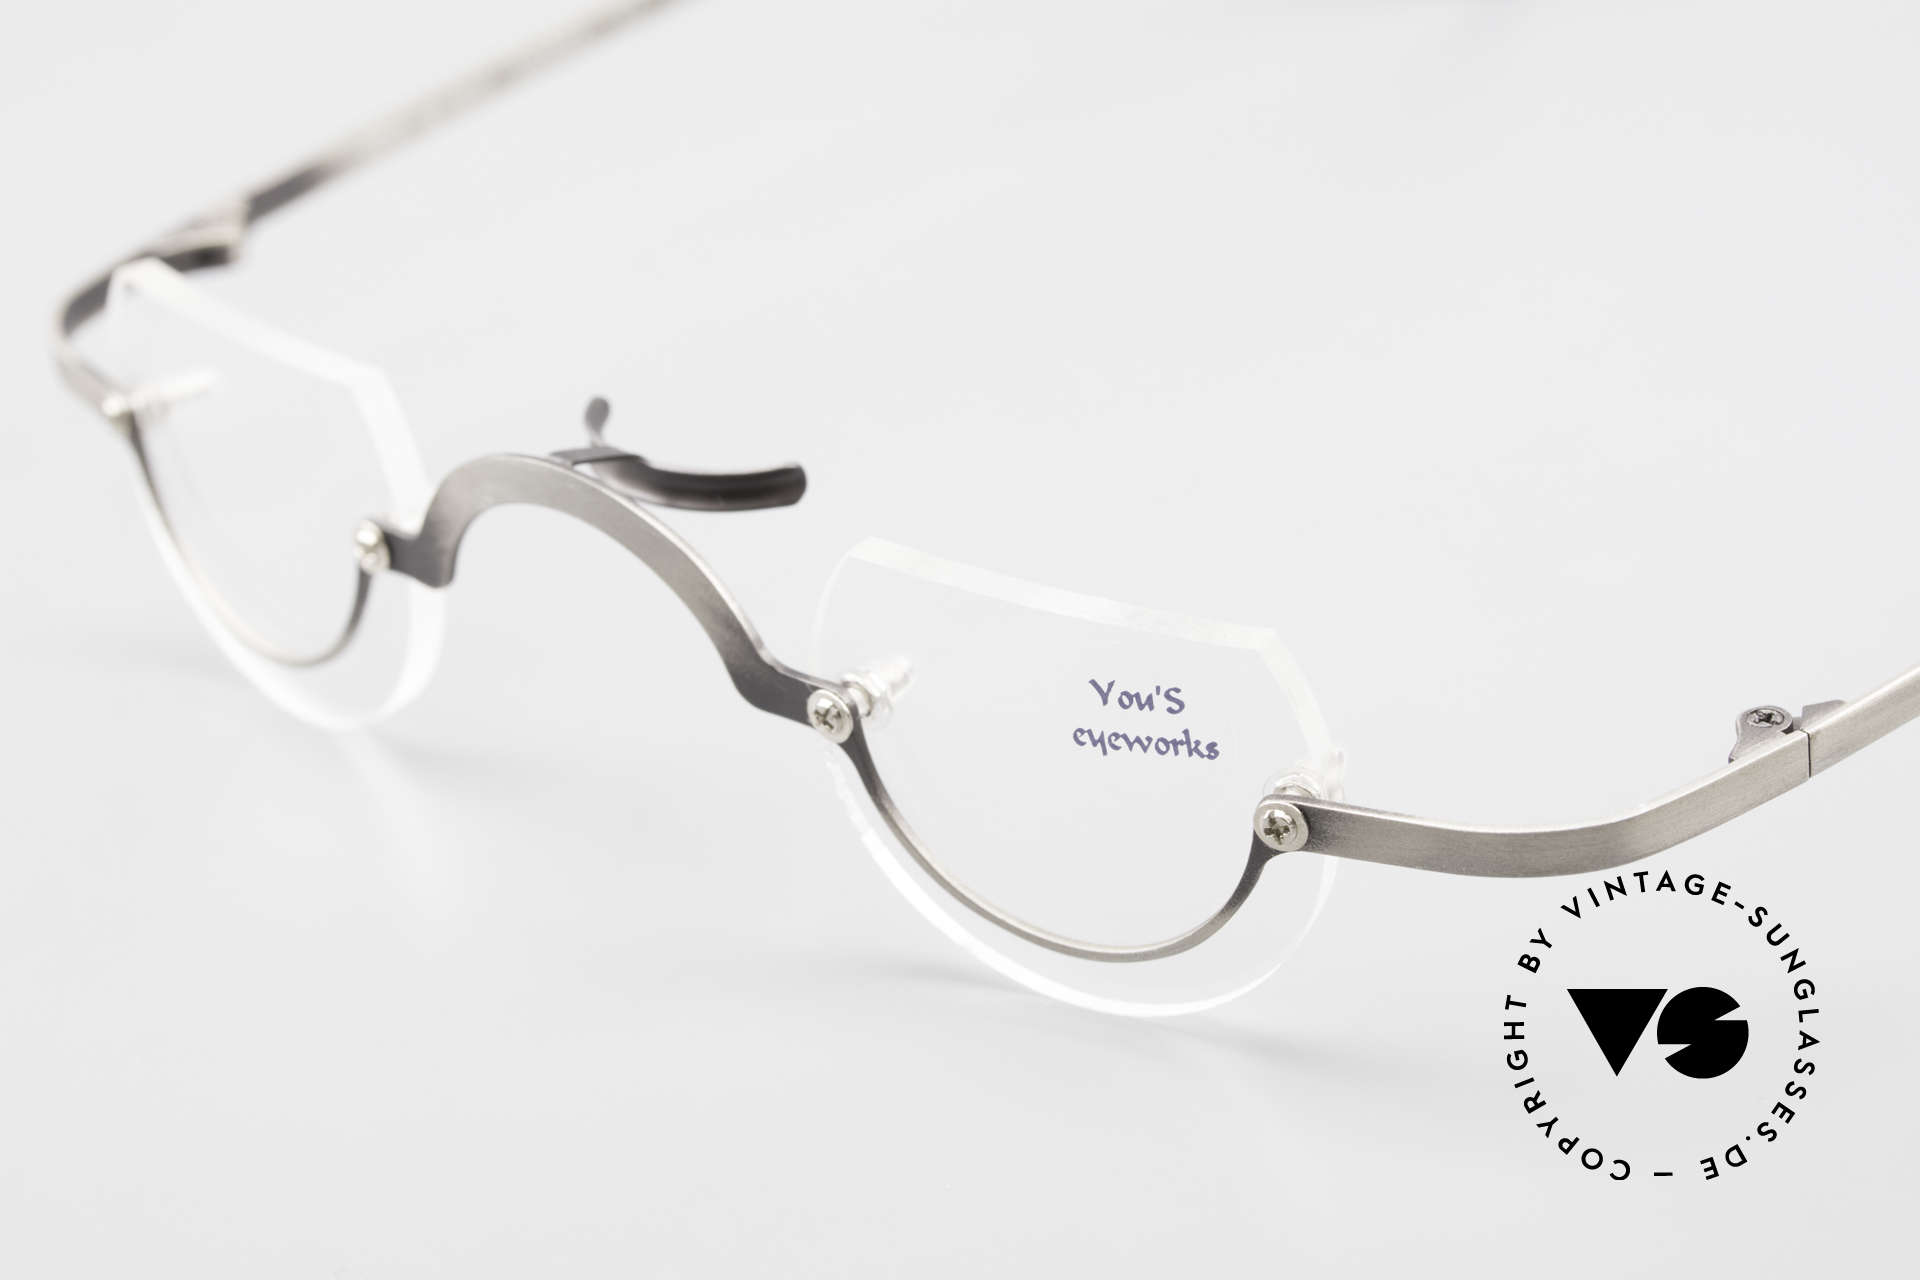 You's Eyeworks 41 Crazy Vintage Reading Glasses, NO RETRO eyeglasses, but an old 1990's ORIGINAL, Made for Men and Women